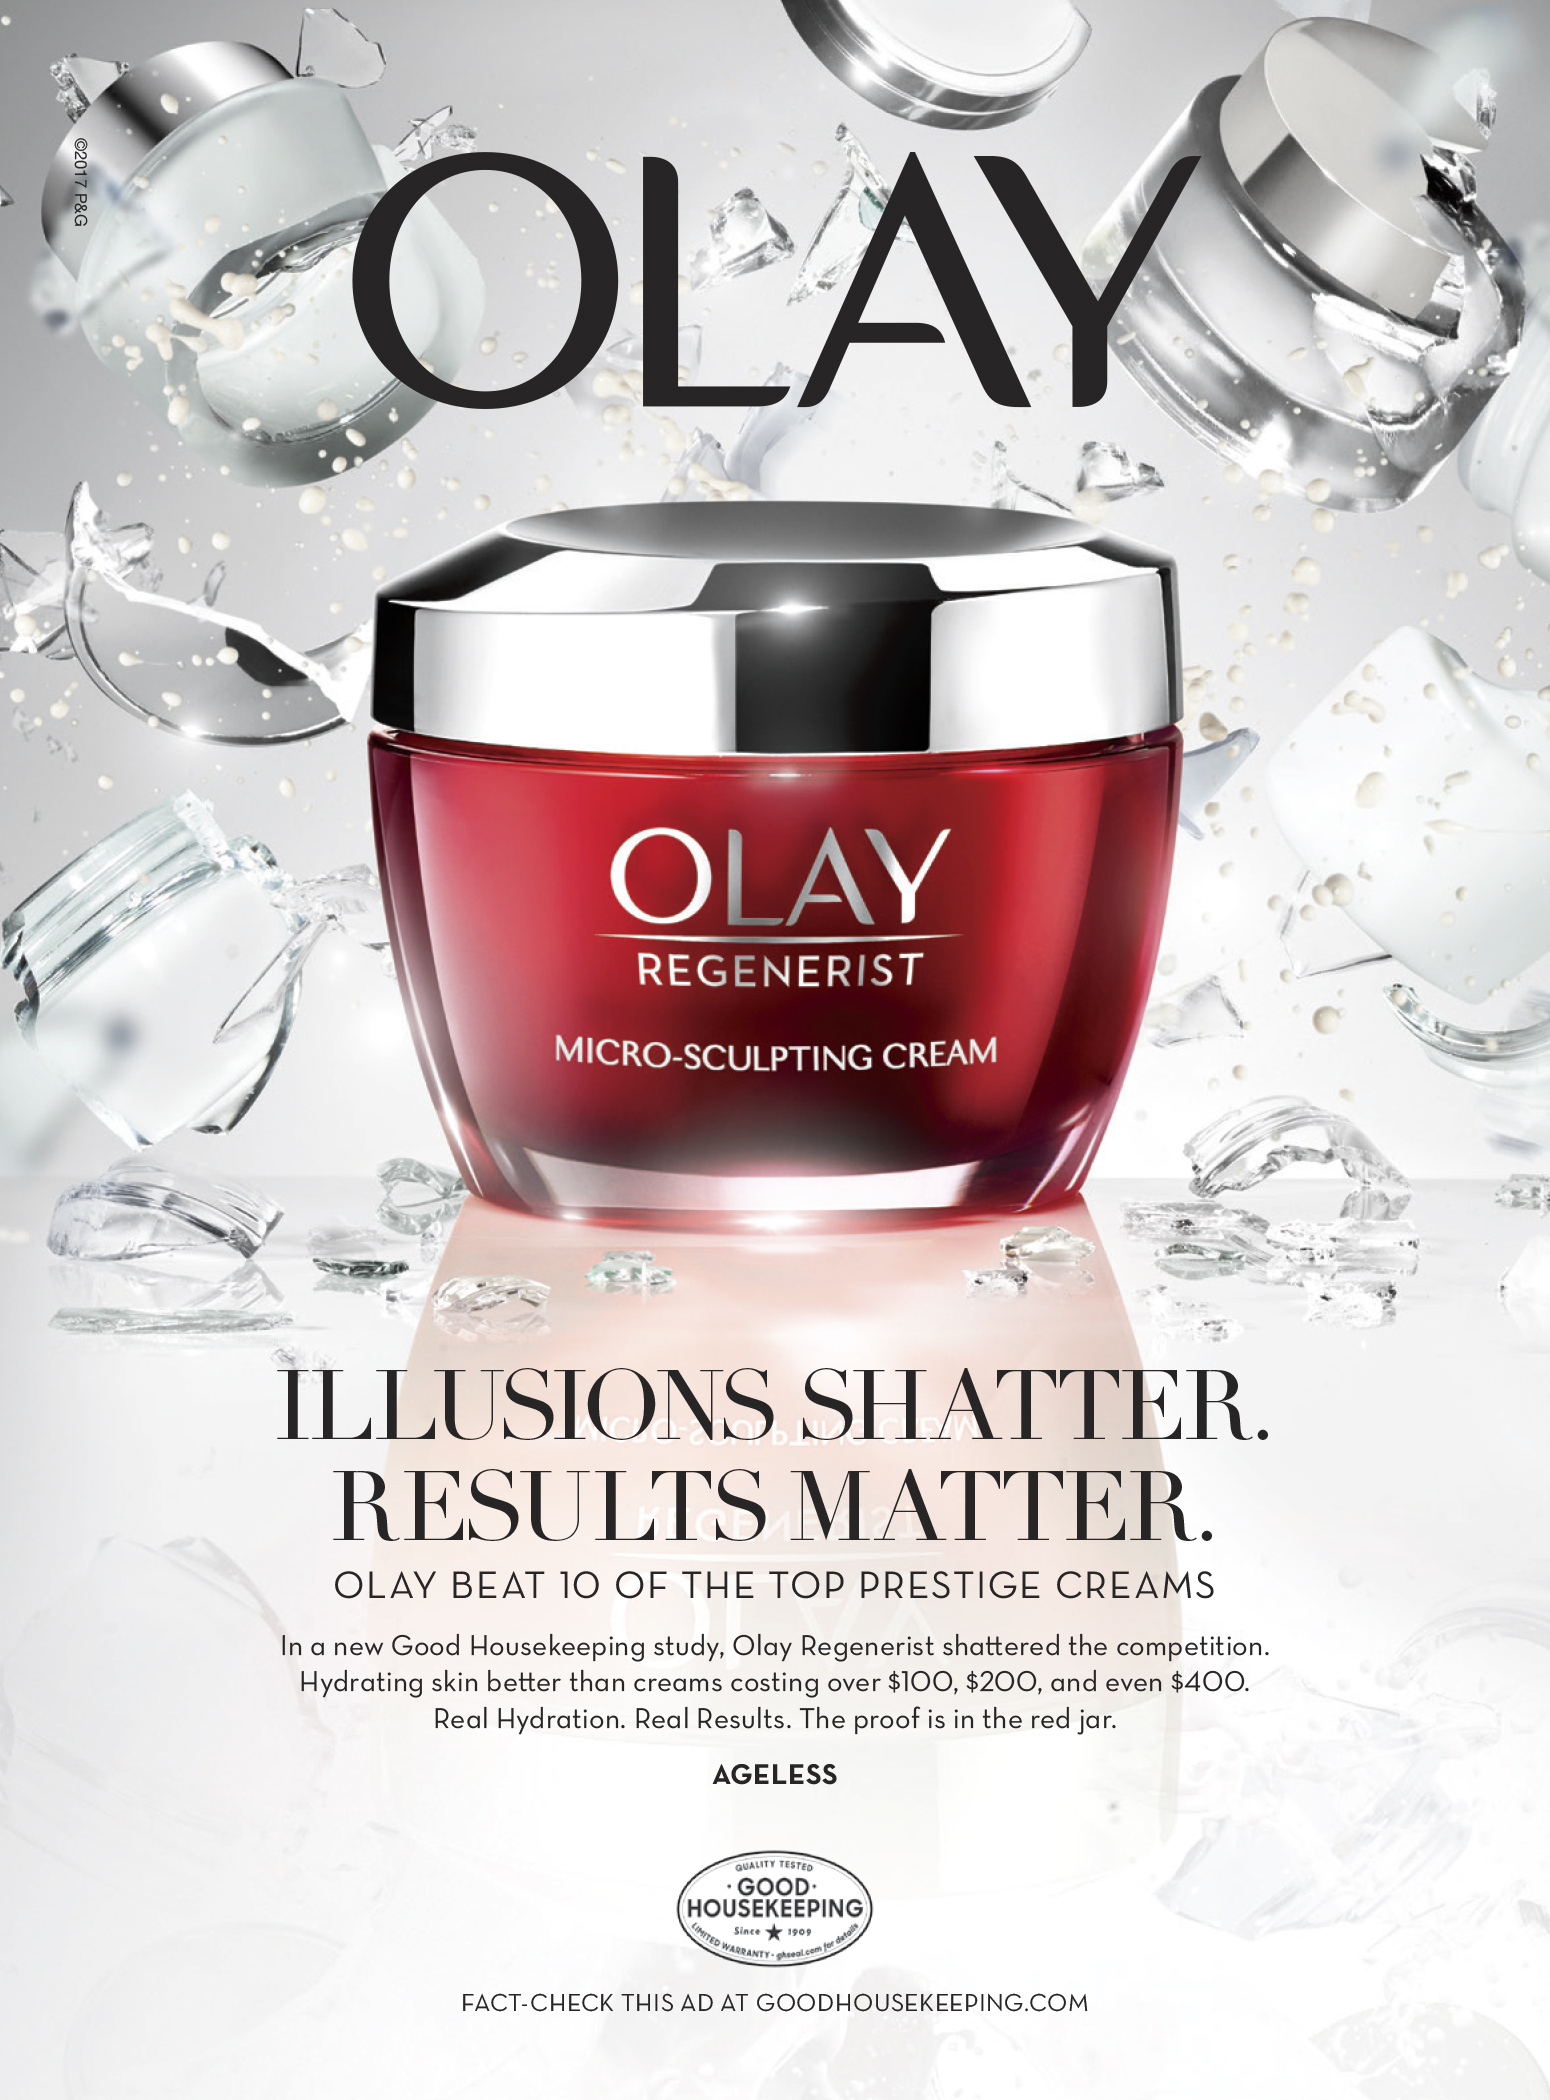 Good Housekeeping Institute Study Proves Olay Outperforms 10 Top